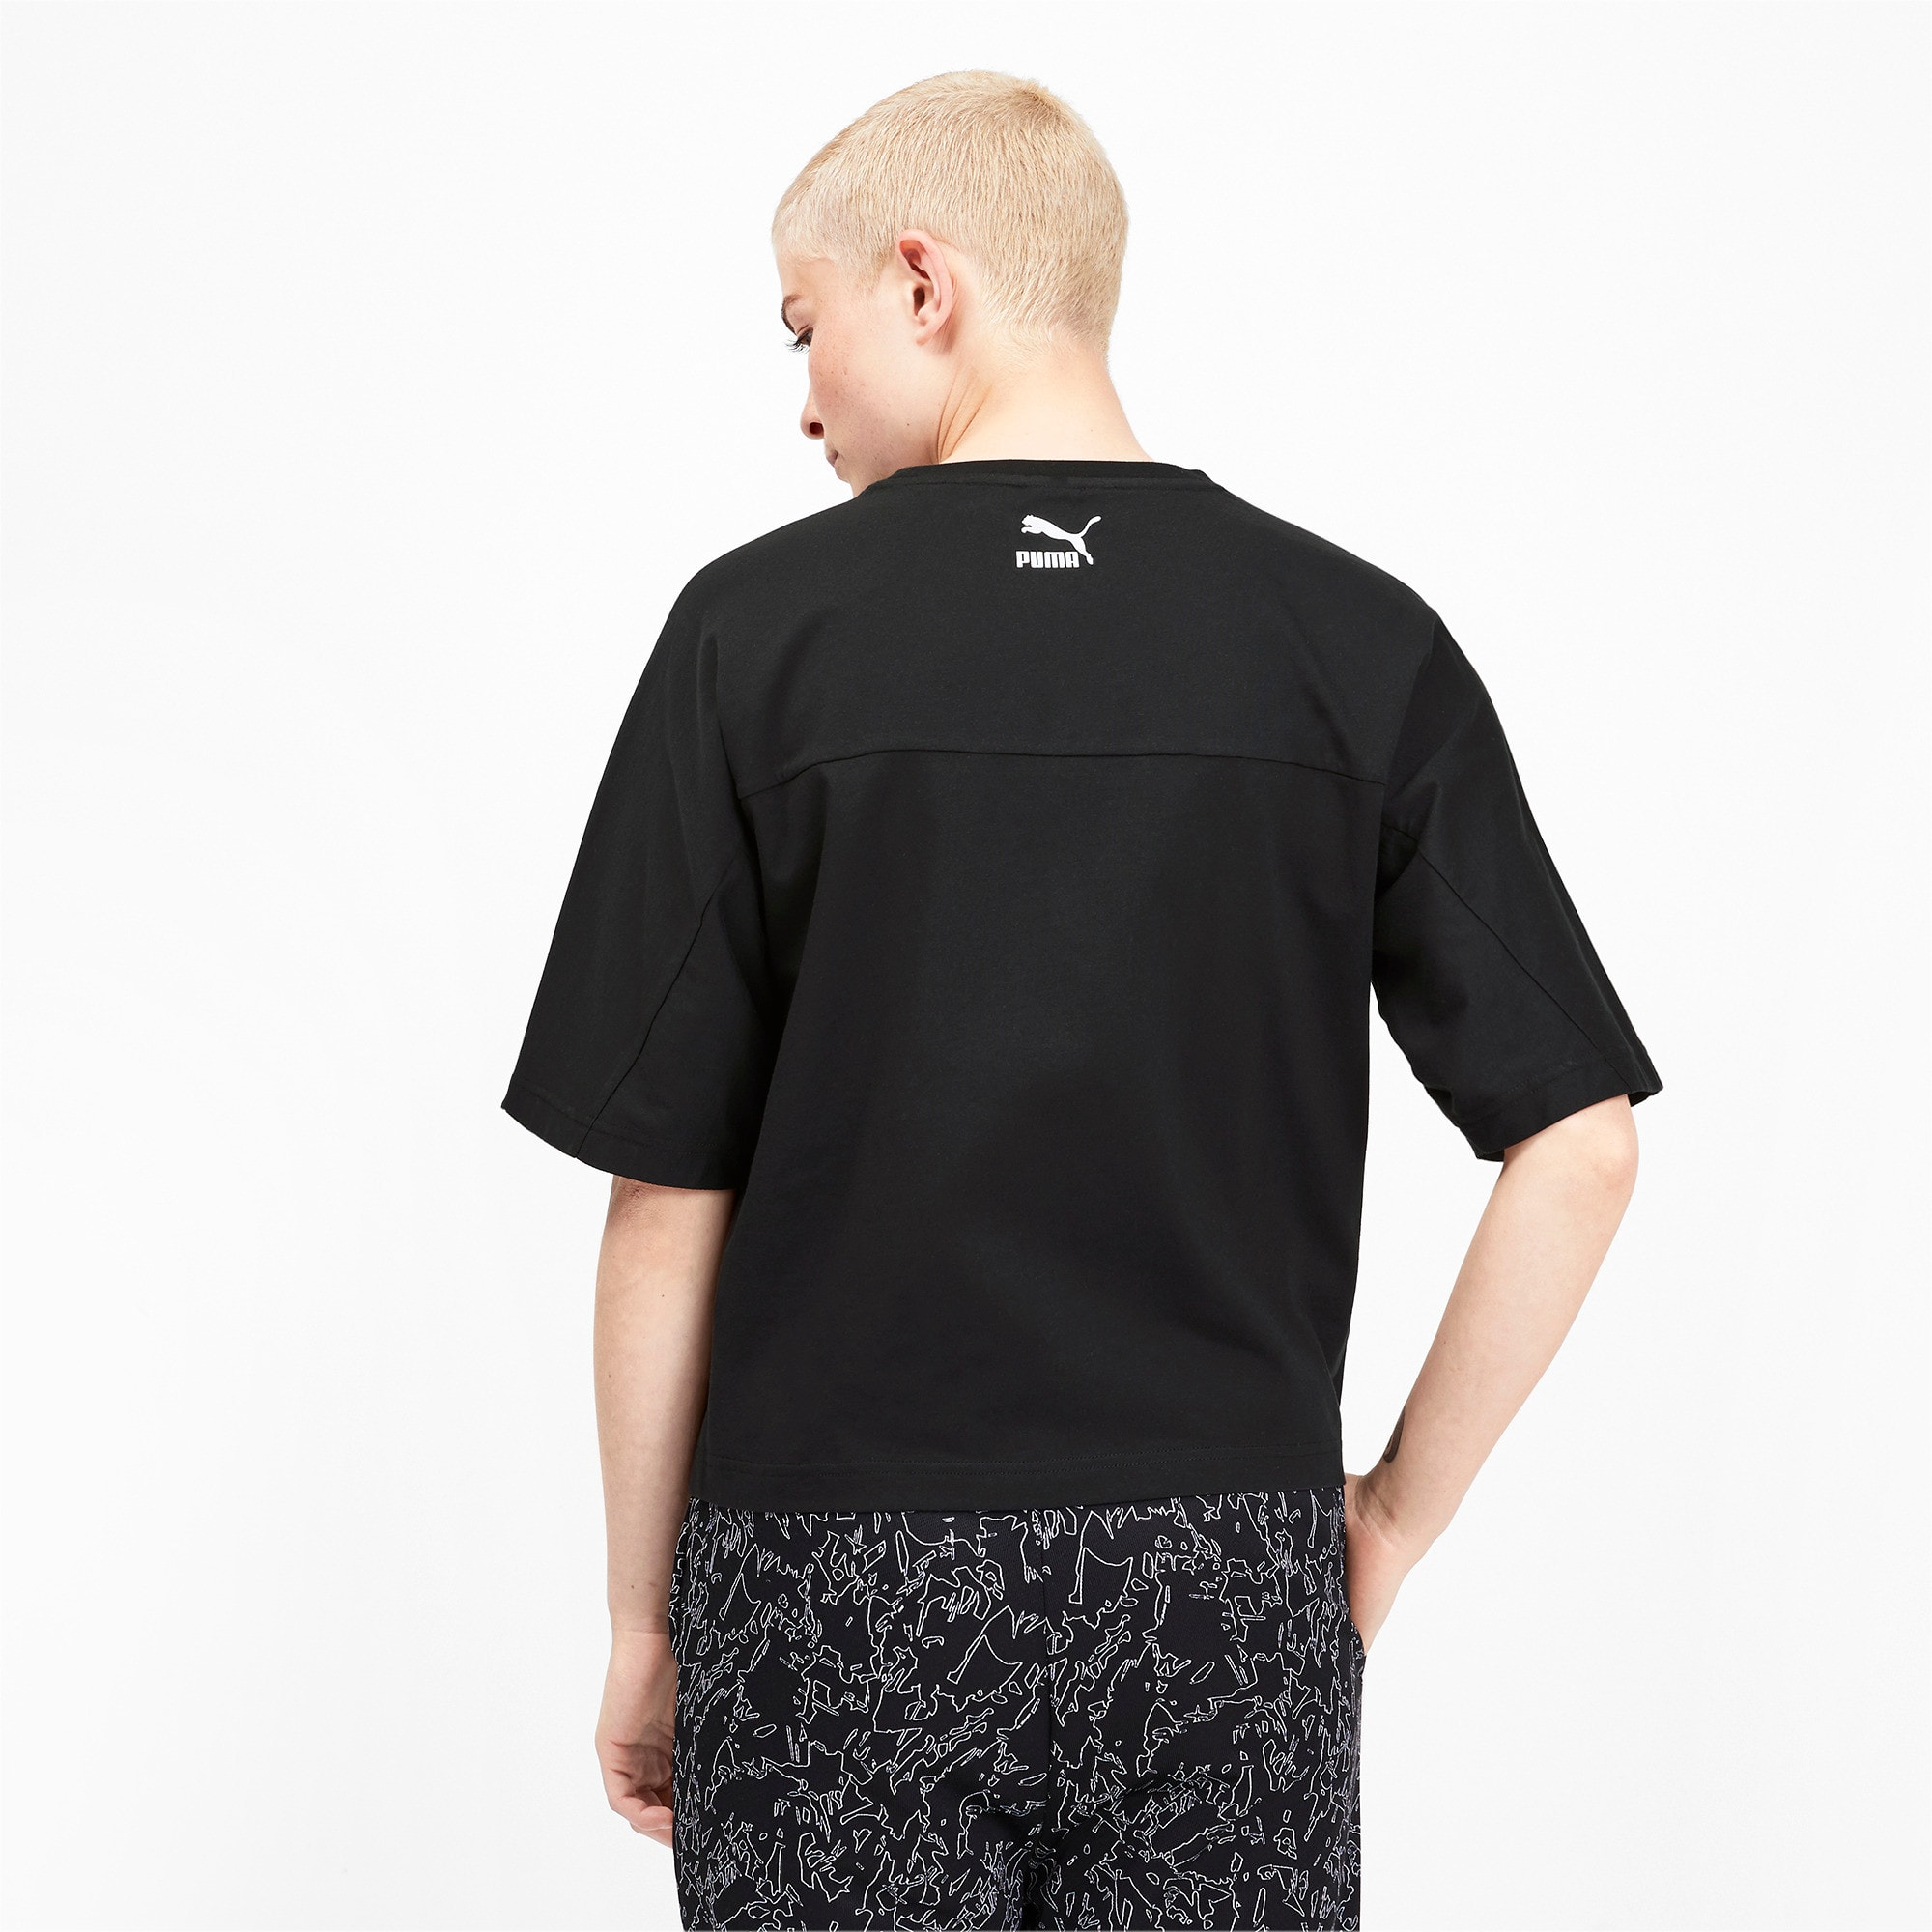 Thumbnail 3 of luXTG Women's Tee, Puma Black, medium